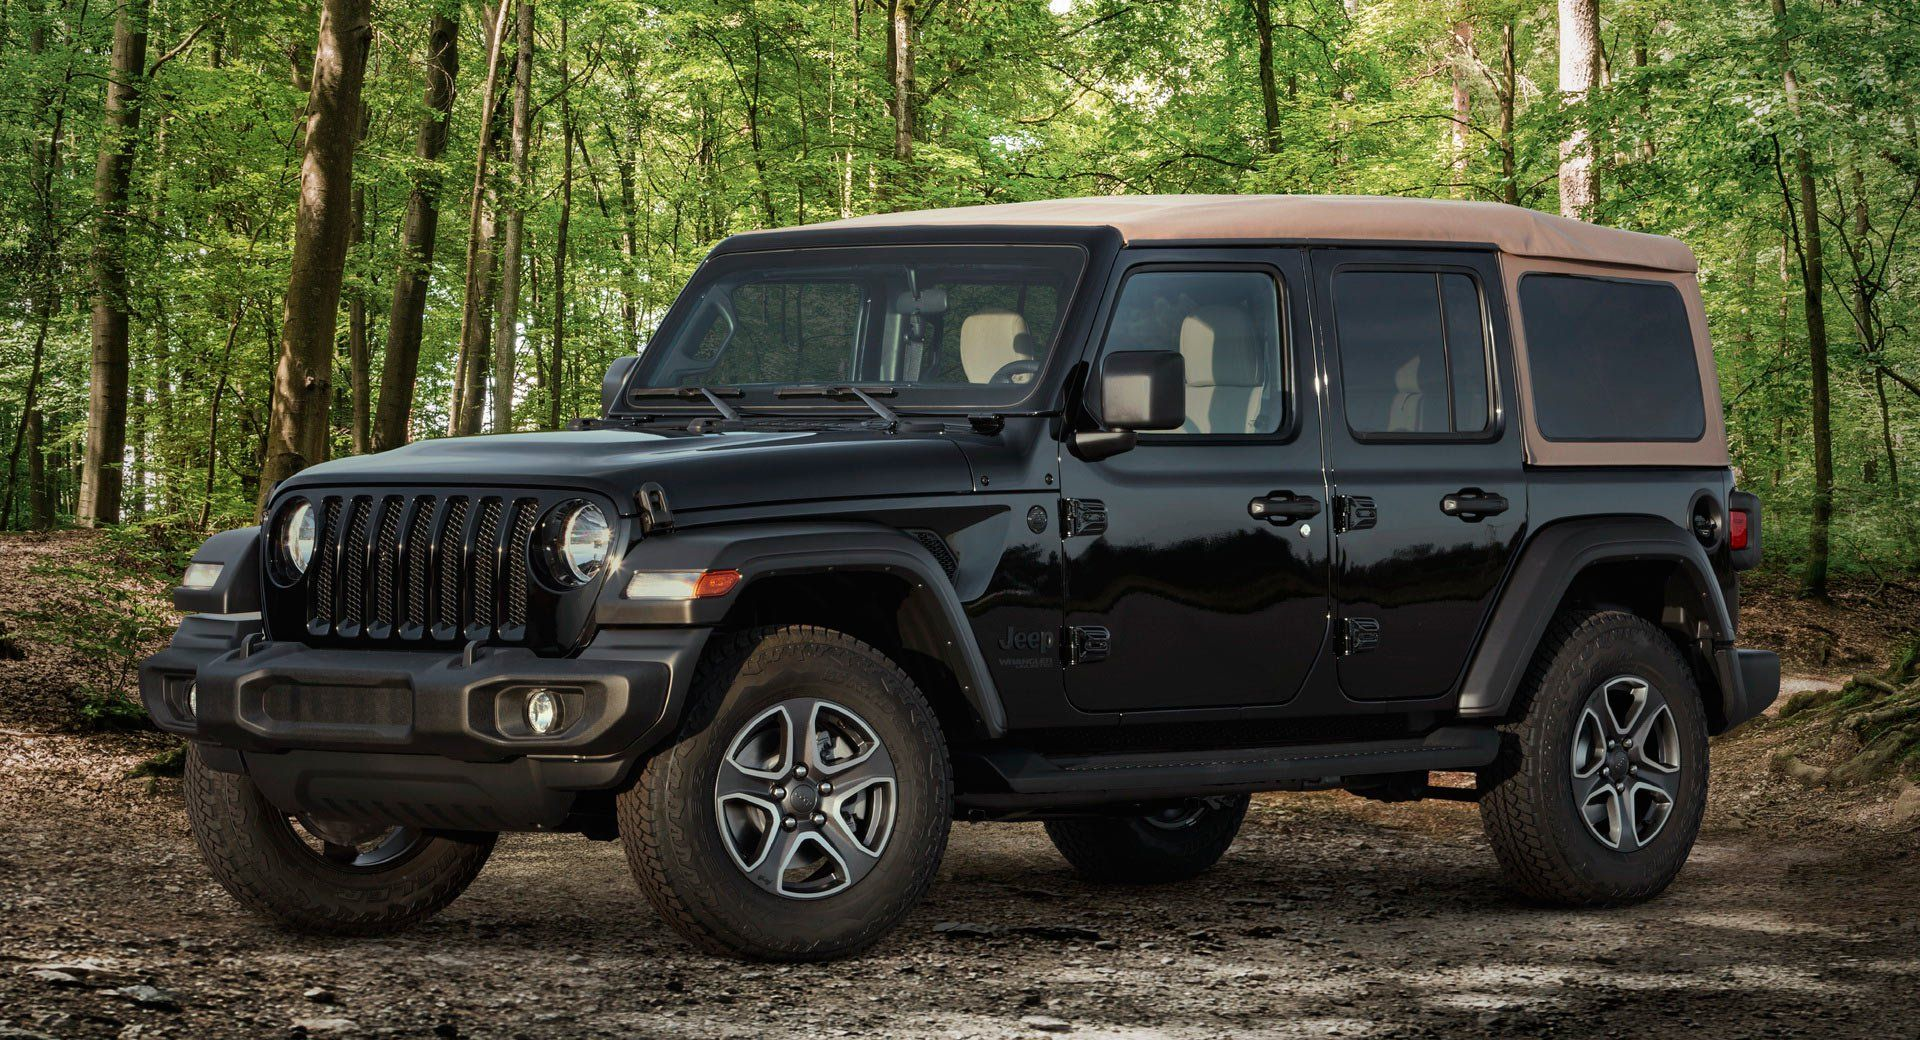 Jeep Unveils Two New Wrangler Models For 2020 Priced From 32 940 Jeep Jeepwrangler Newcars Prices Carlifestyle Carnewsnetwork Carswith Jeep Wrangler Jeep Diesel Engine